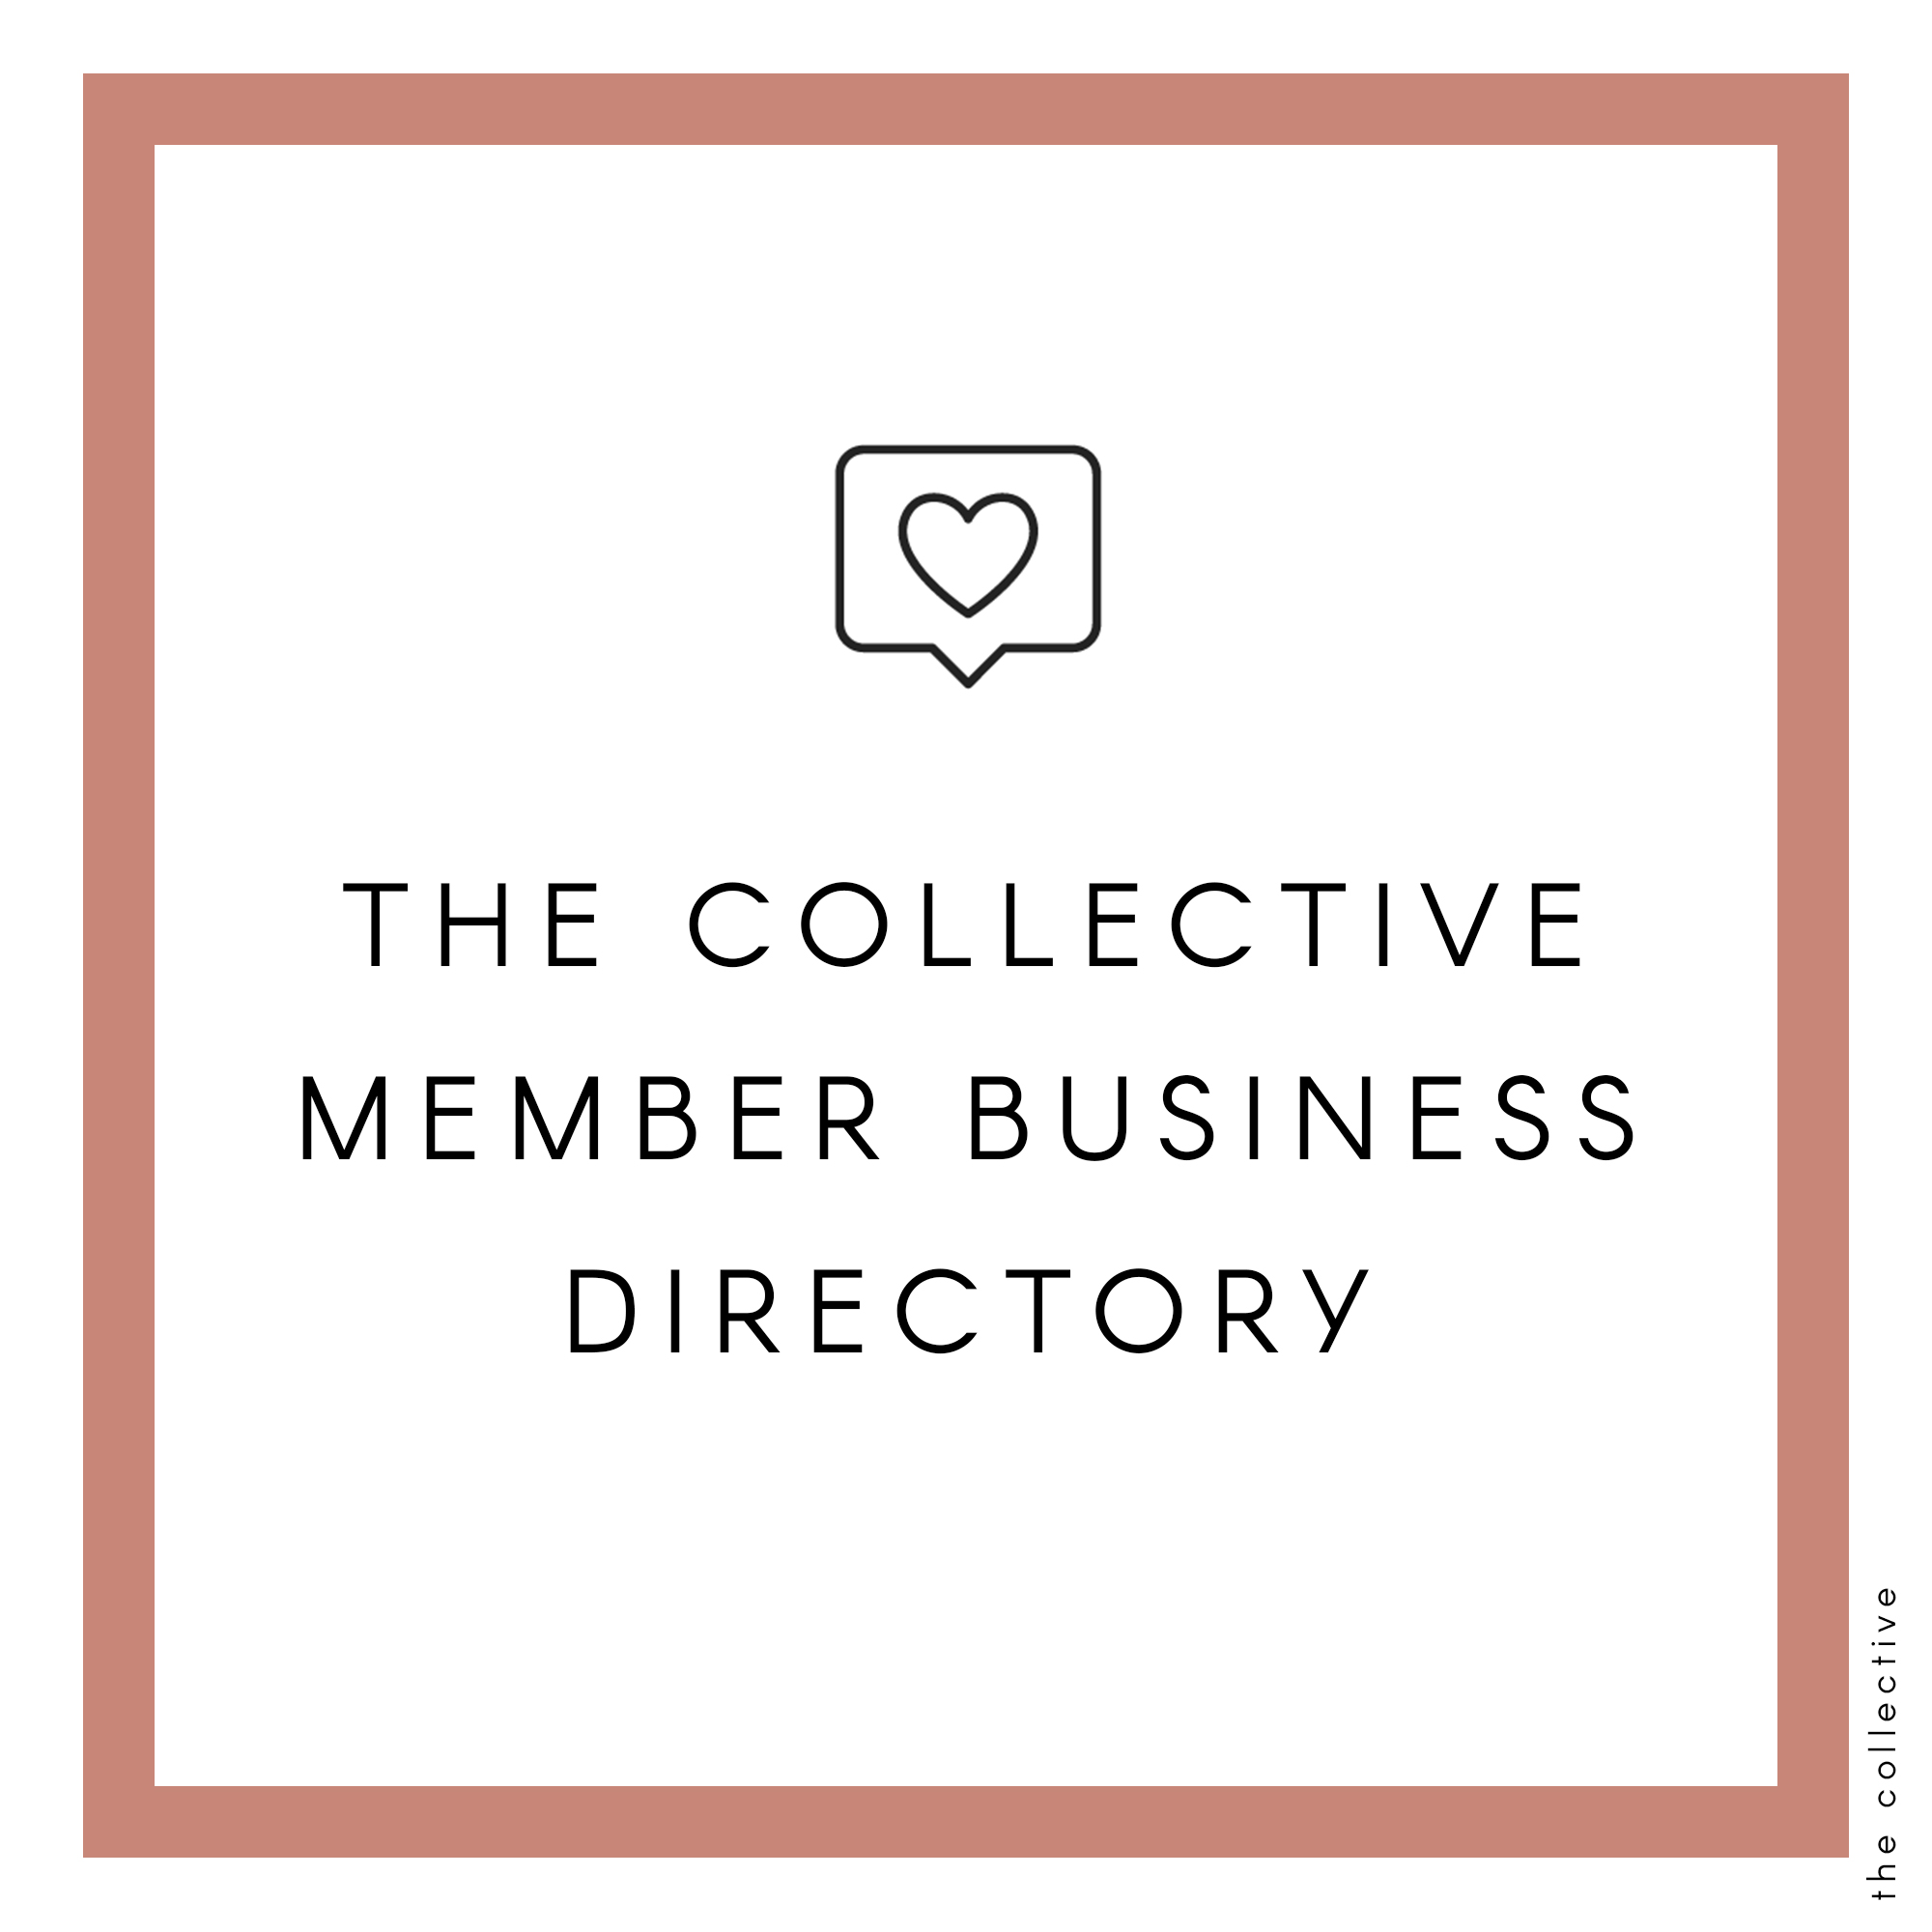 The Collective biz directory